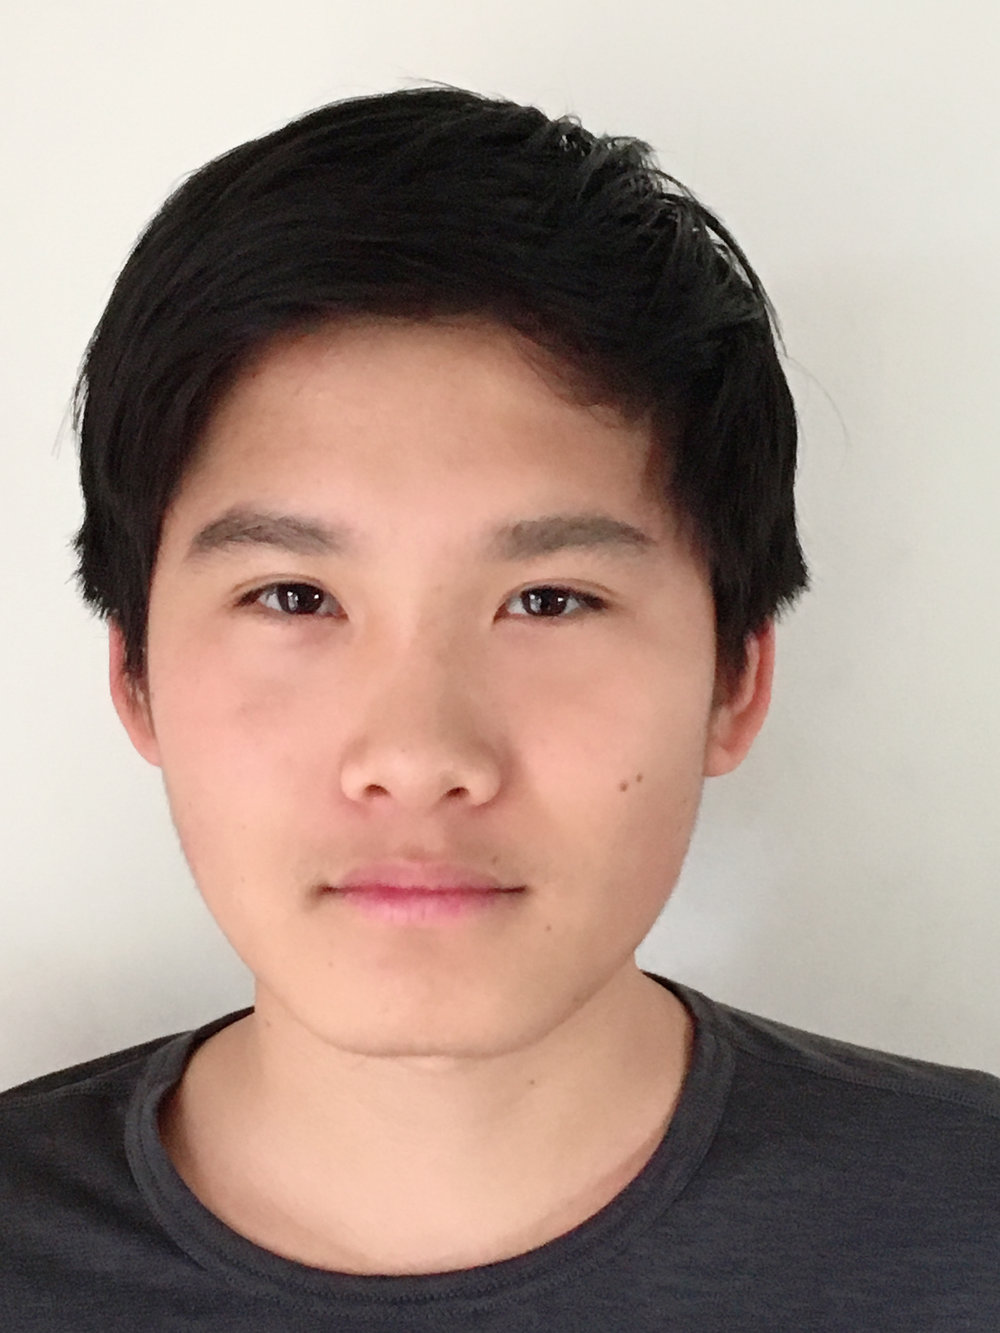 Carl Chen - Carl is a high school junior living in Los Angeles, California. He has always found poetry to be therapeutic.